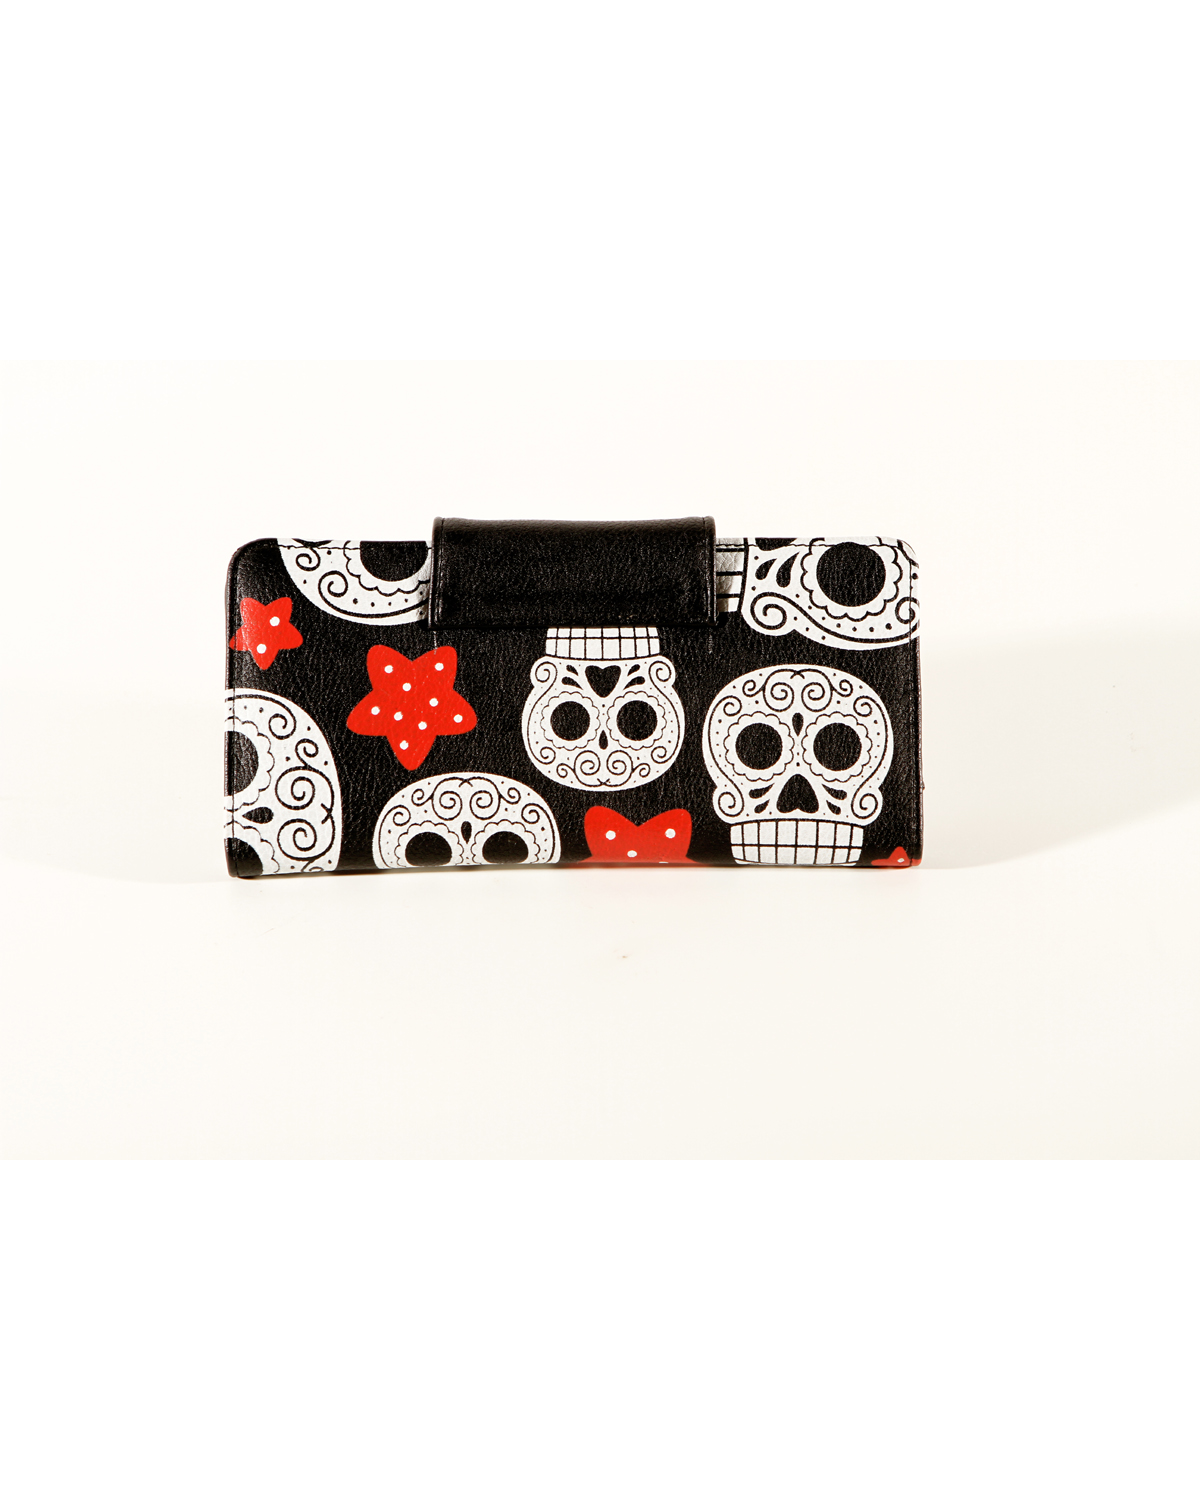 skulls_and_stars_sugar_wallet_wallets_and_money_clips__3.jpg